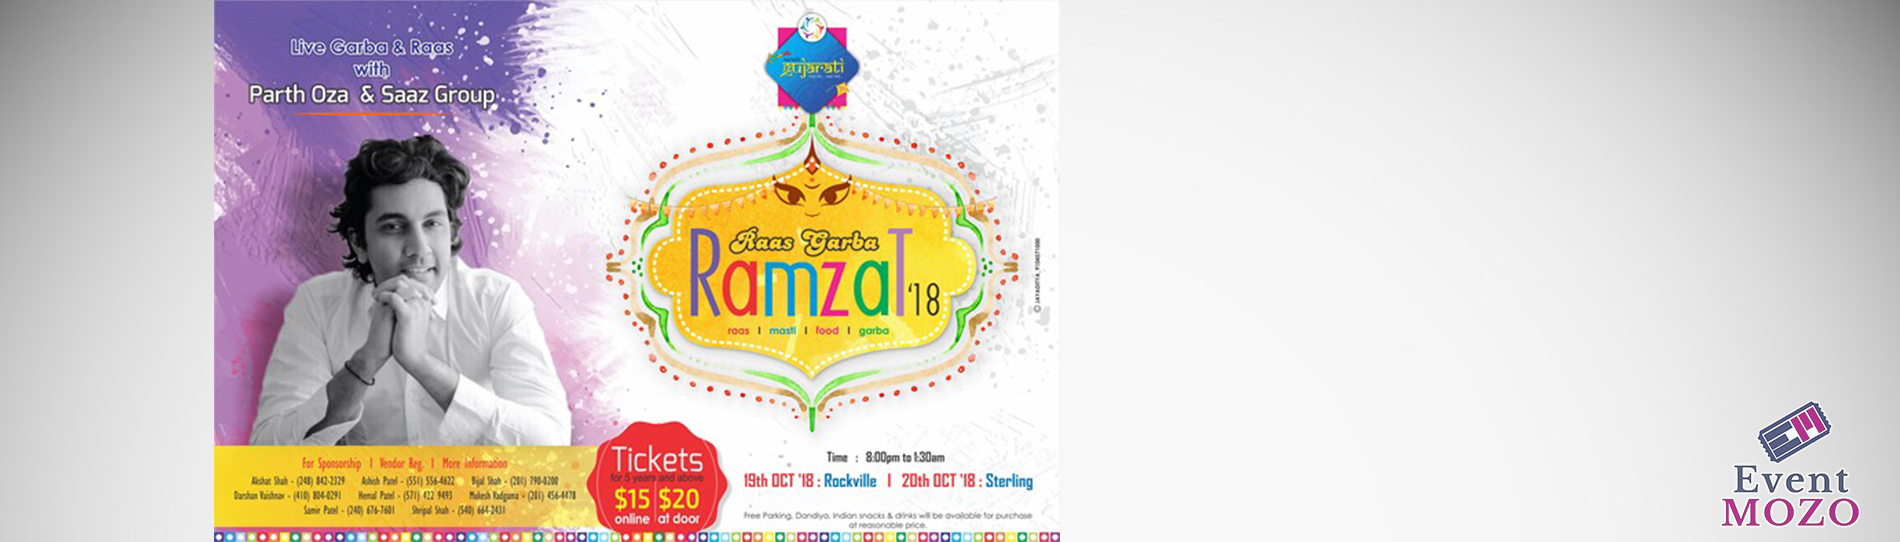 EventMozo MD - Raas Garba Ramzat - Parth Oza and Saaz Group